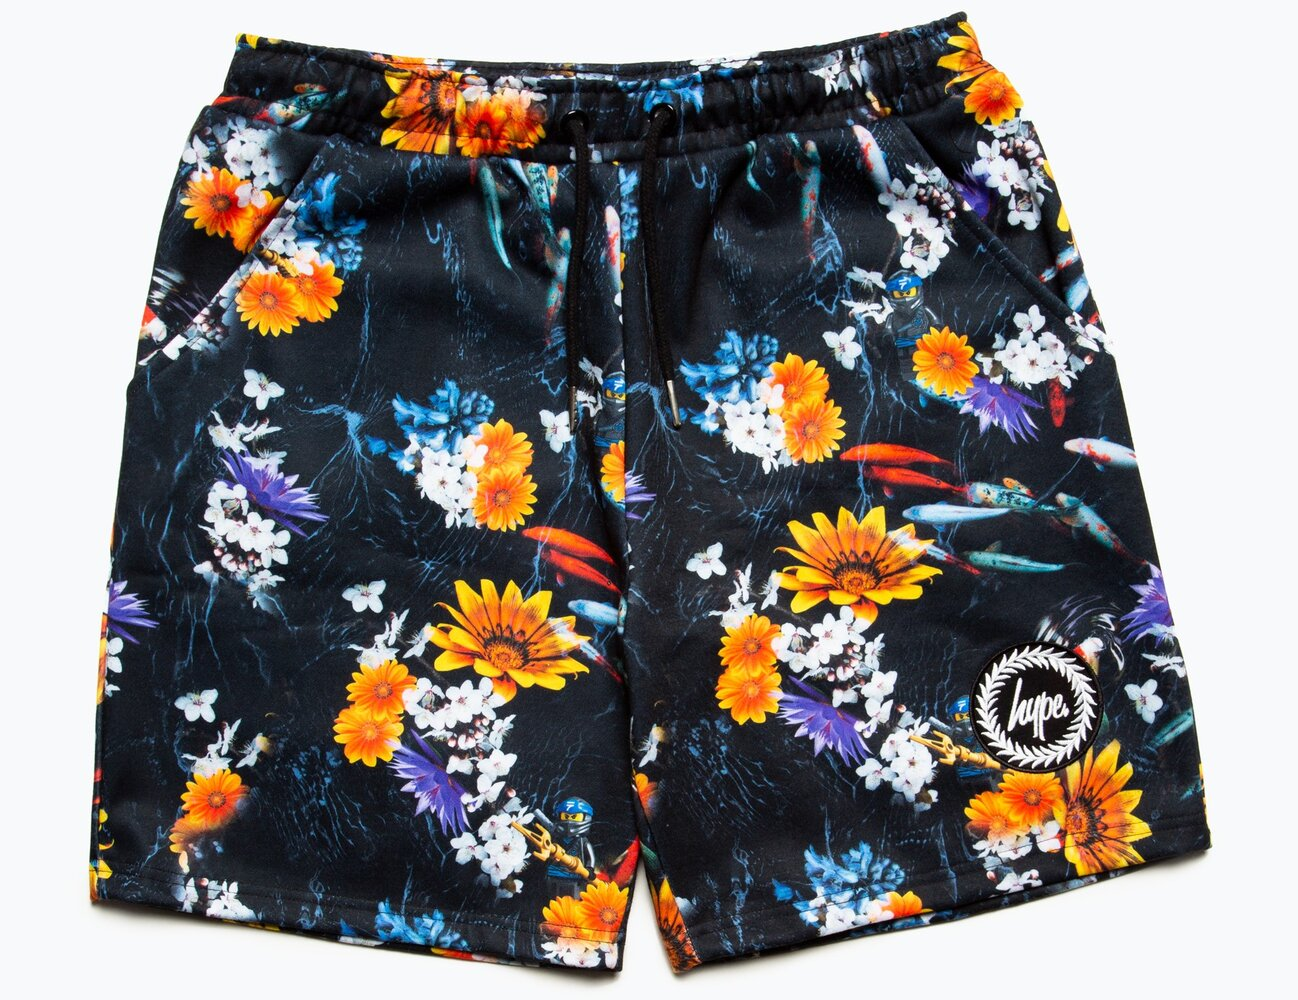 HYPE X LEGO NINJAGO Nya Adults' Shorts